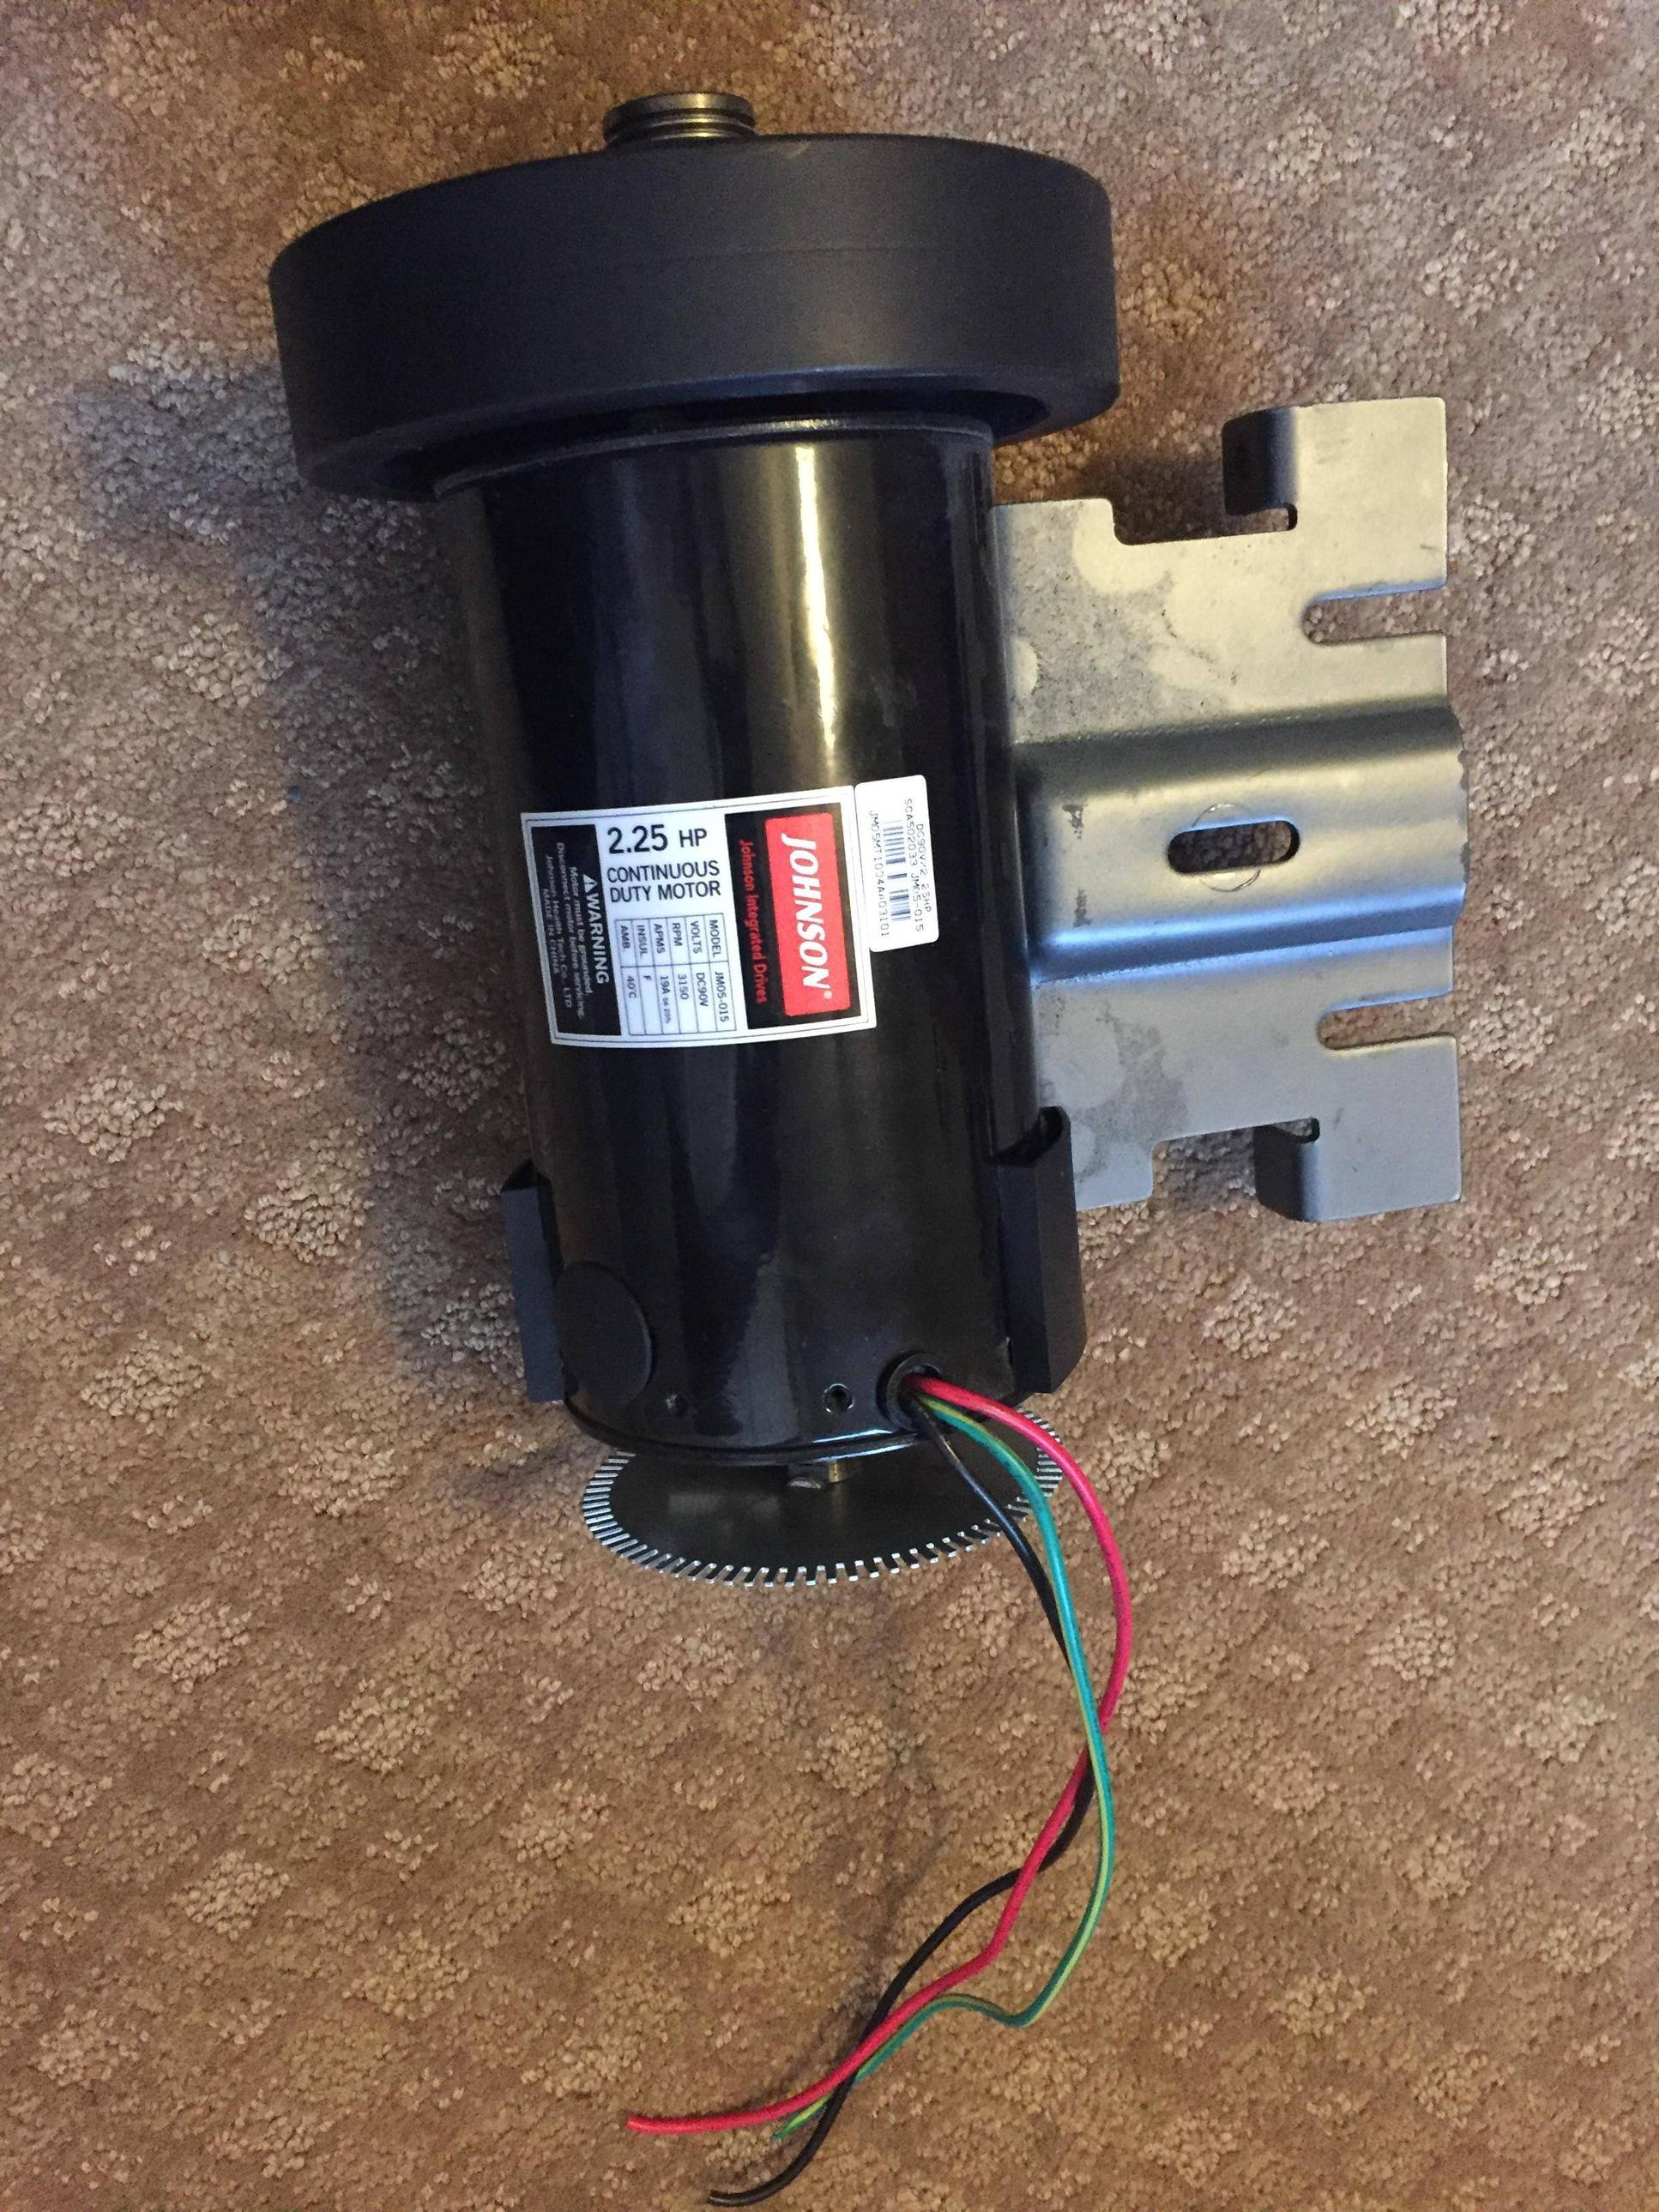 hight resolution of pictures are below motor specs motor